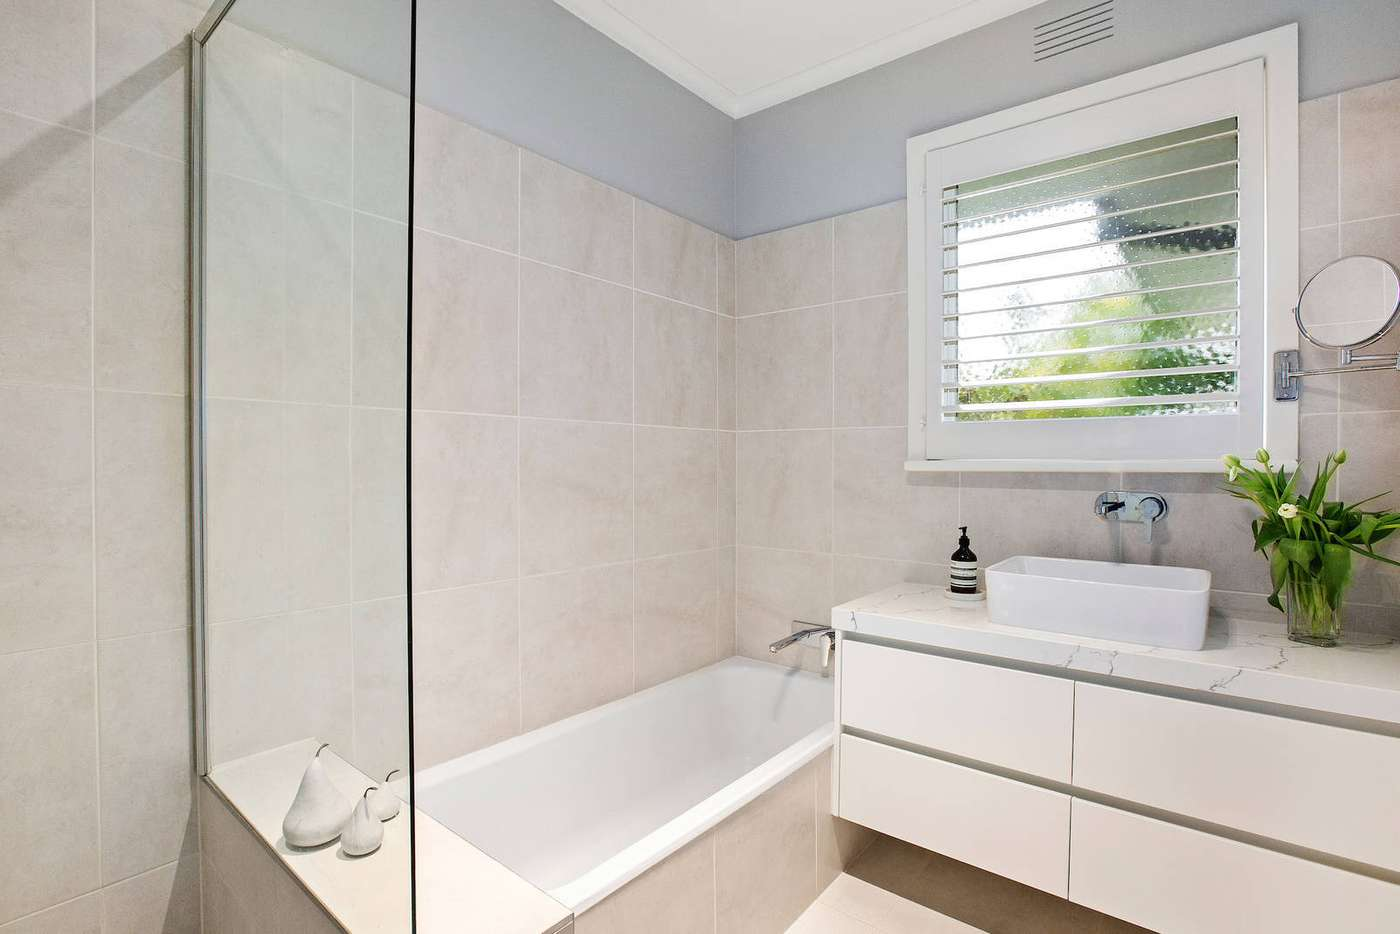 Fifth view of Homely house listing, 78 Old Mornington Road, Mount Eliza VIC 3930